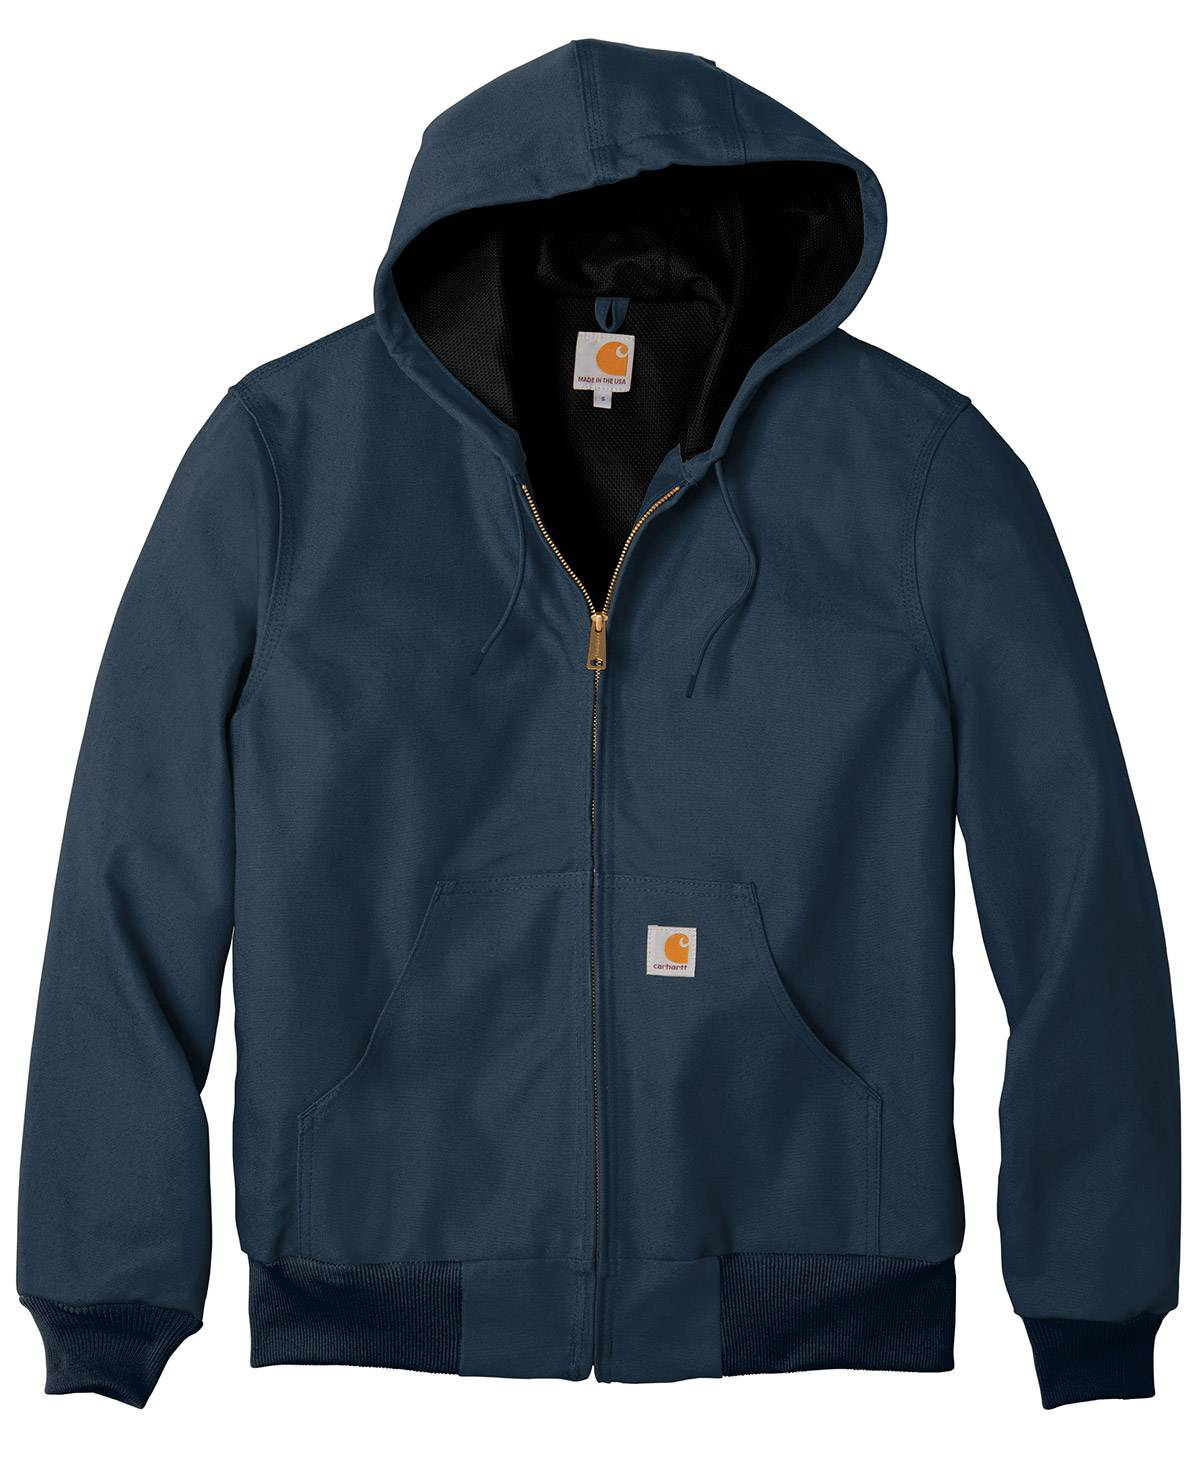 153f8d6f9fe76 Carhartt Thermal-Lined Duck Active Men's Custom Jacket